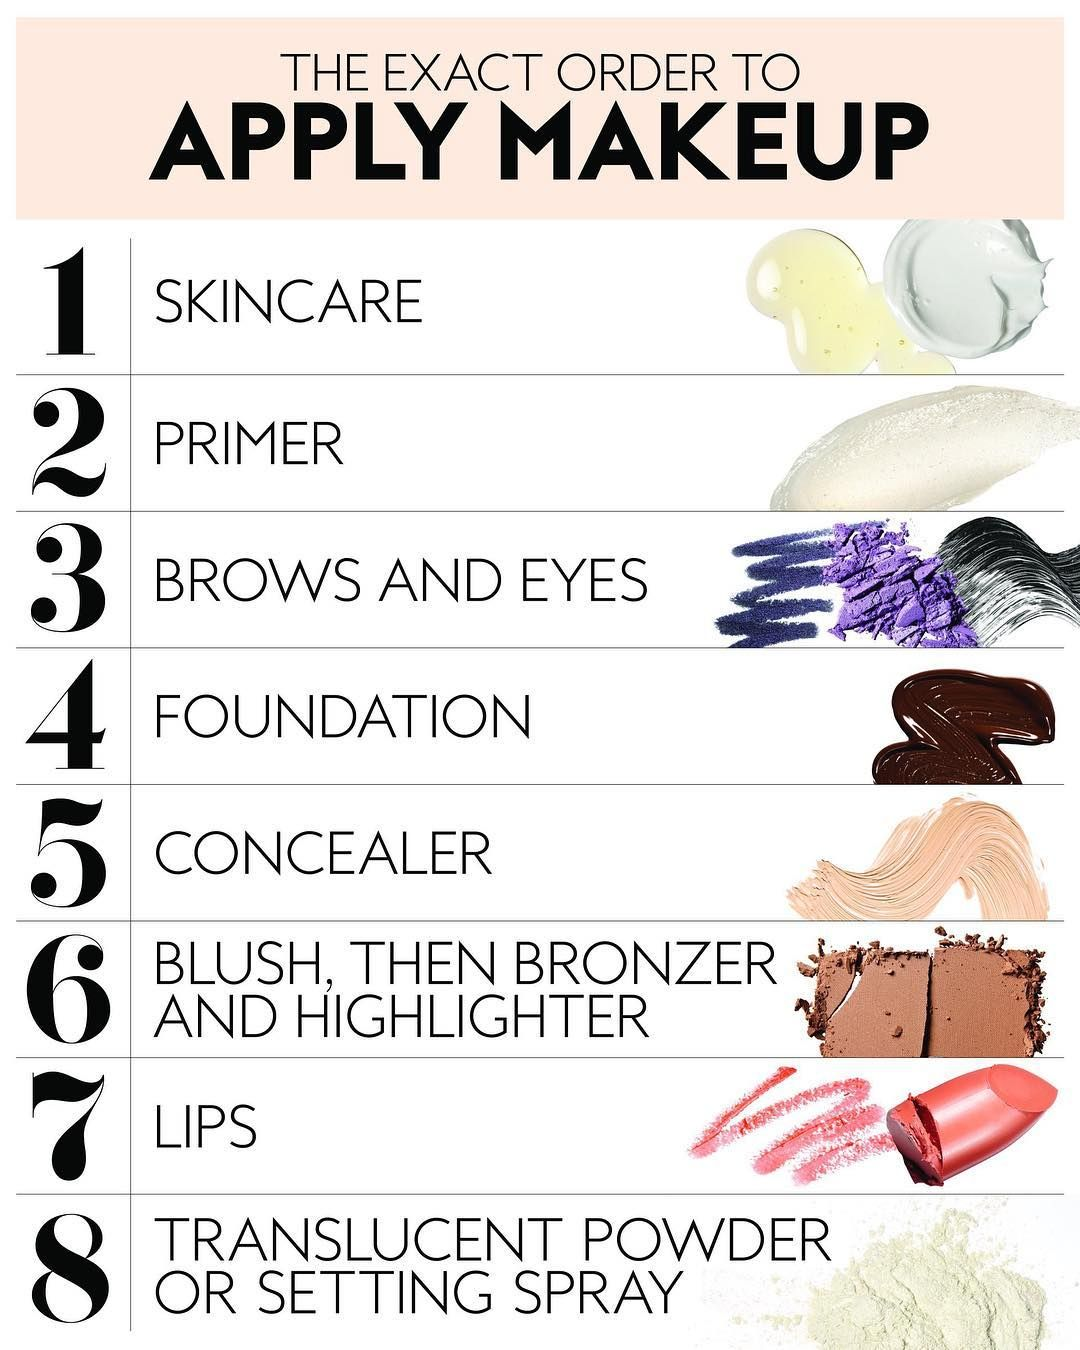 What order do you apply your makeup in? Makeup yourself